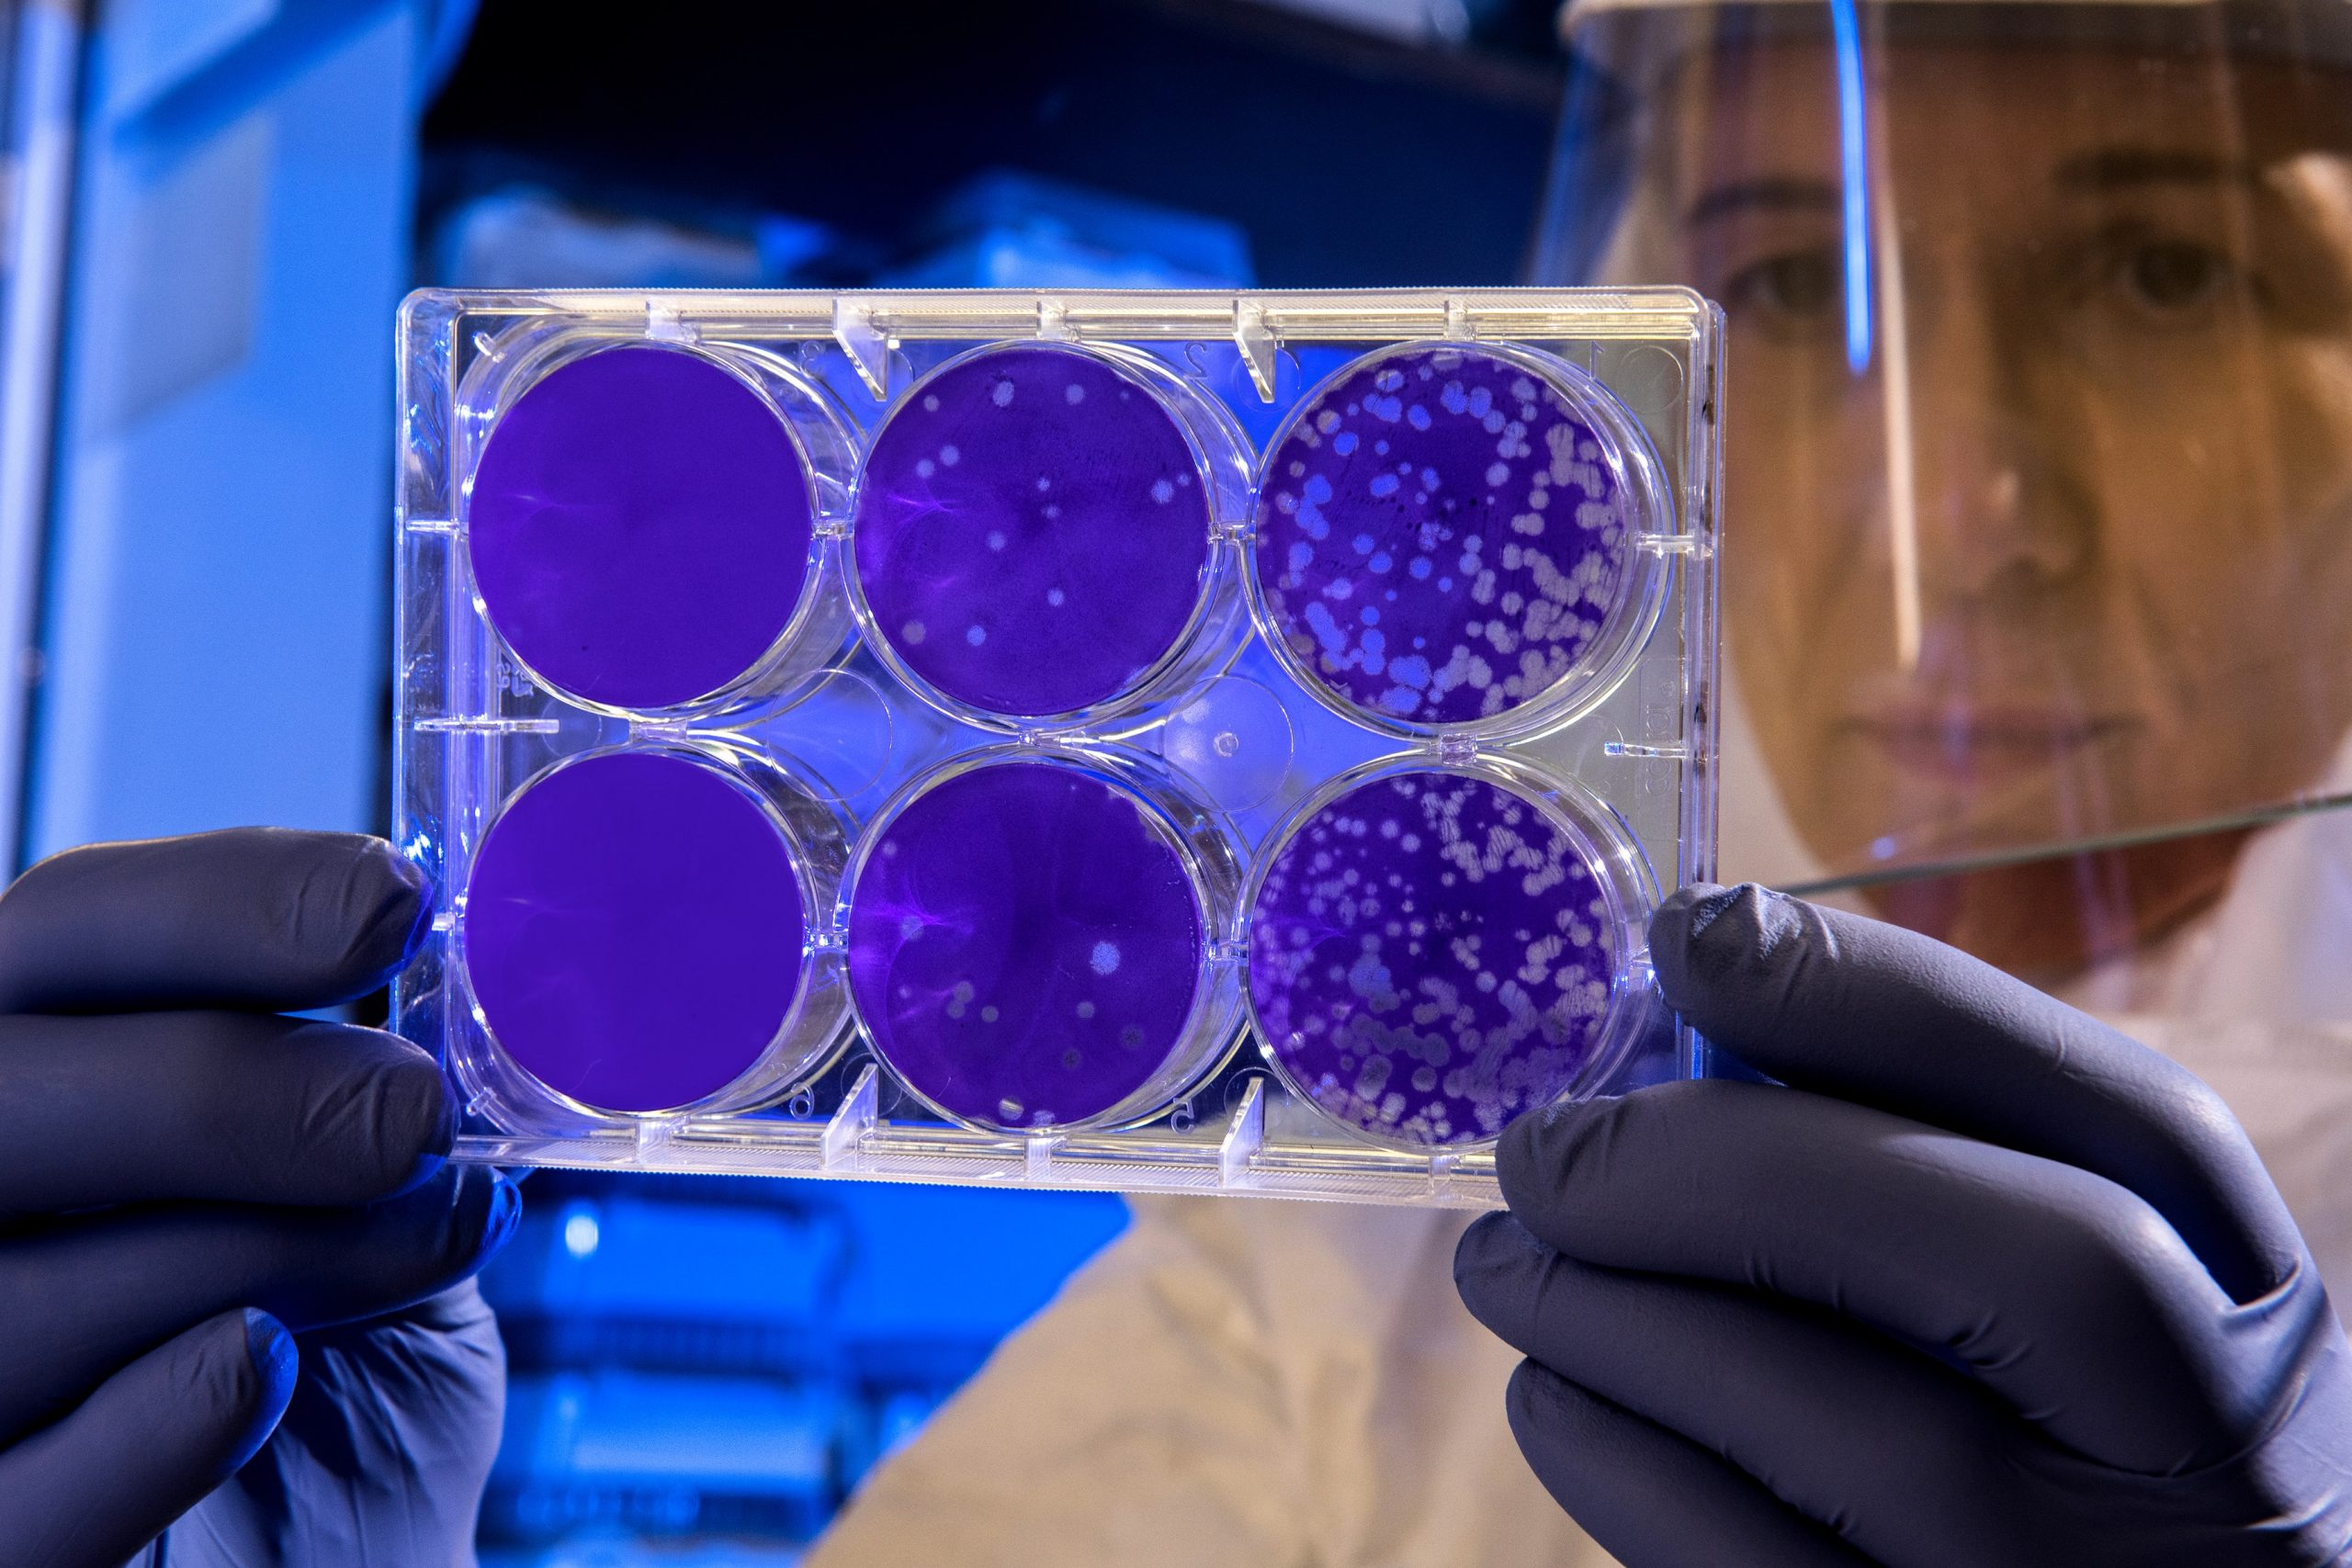 bacterial culture in Petri dishes